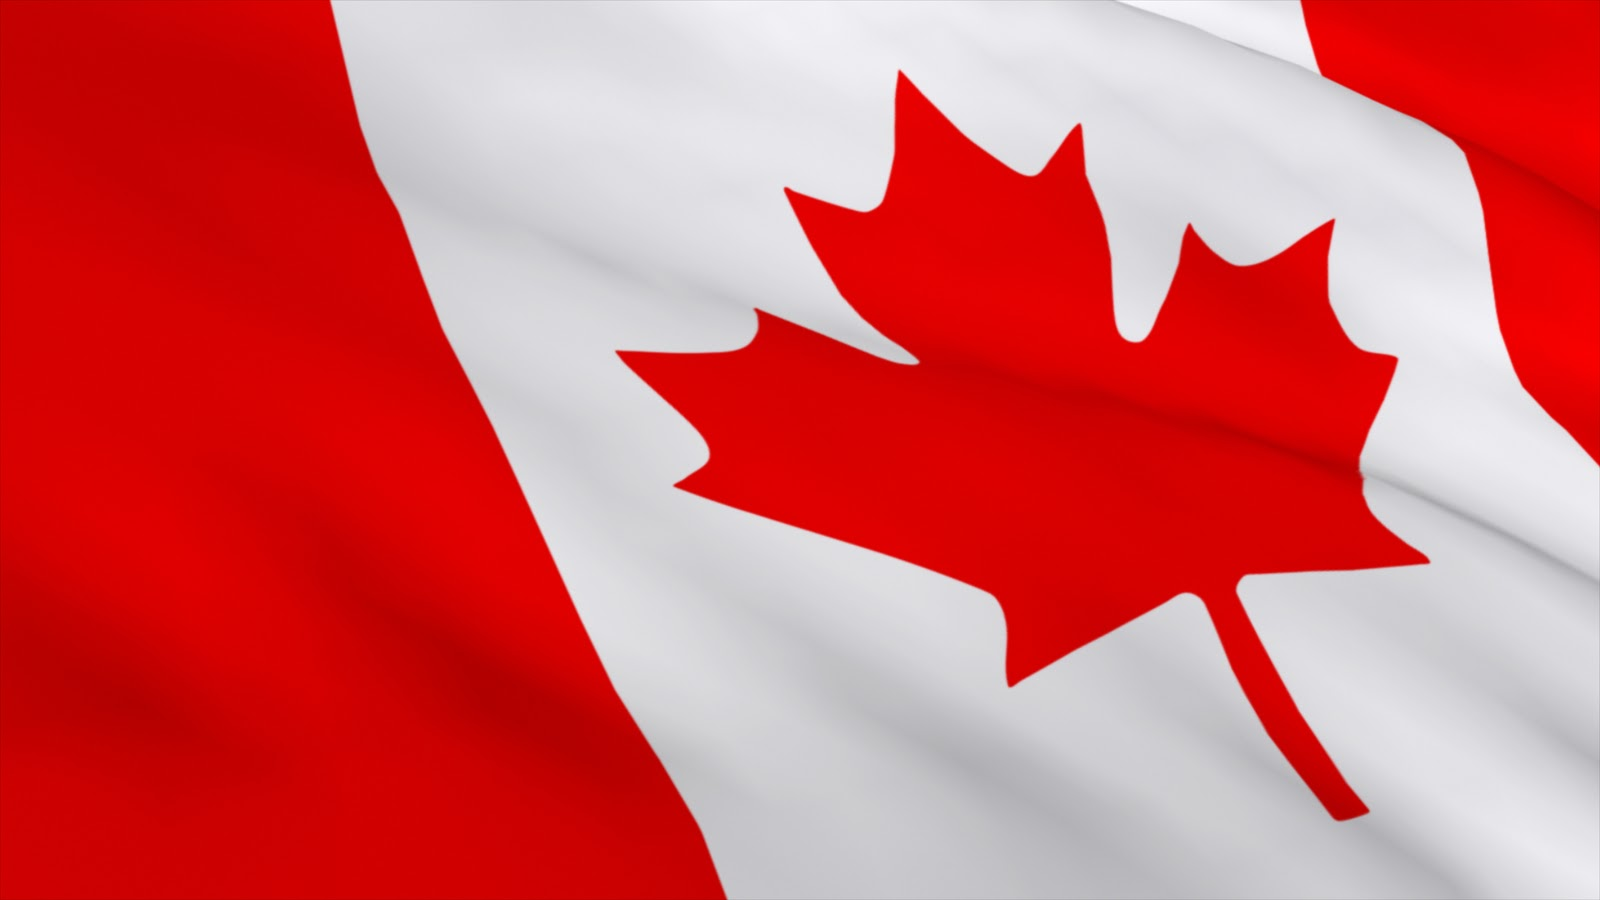 If you dream about moving to canada is it really actually a nightmare the return of the - Canada flag image ...